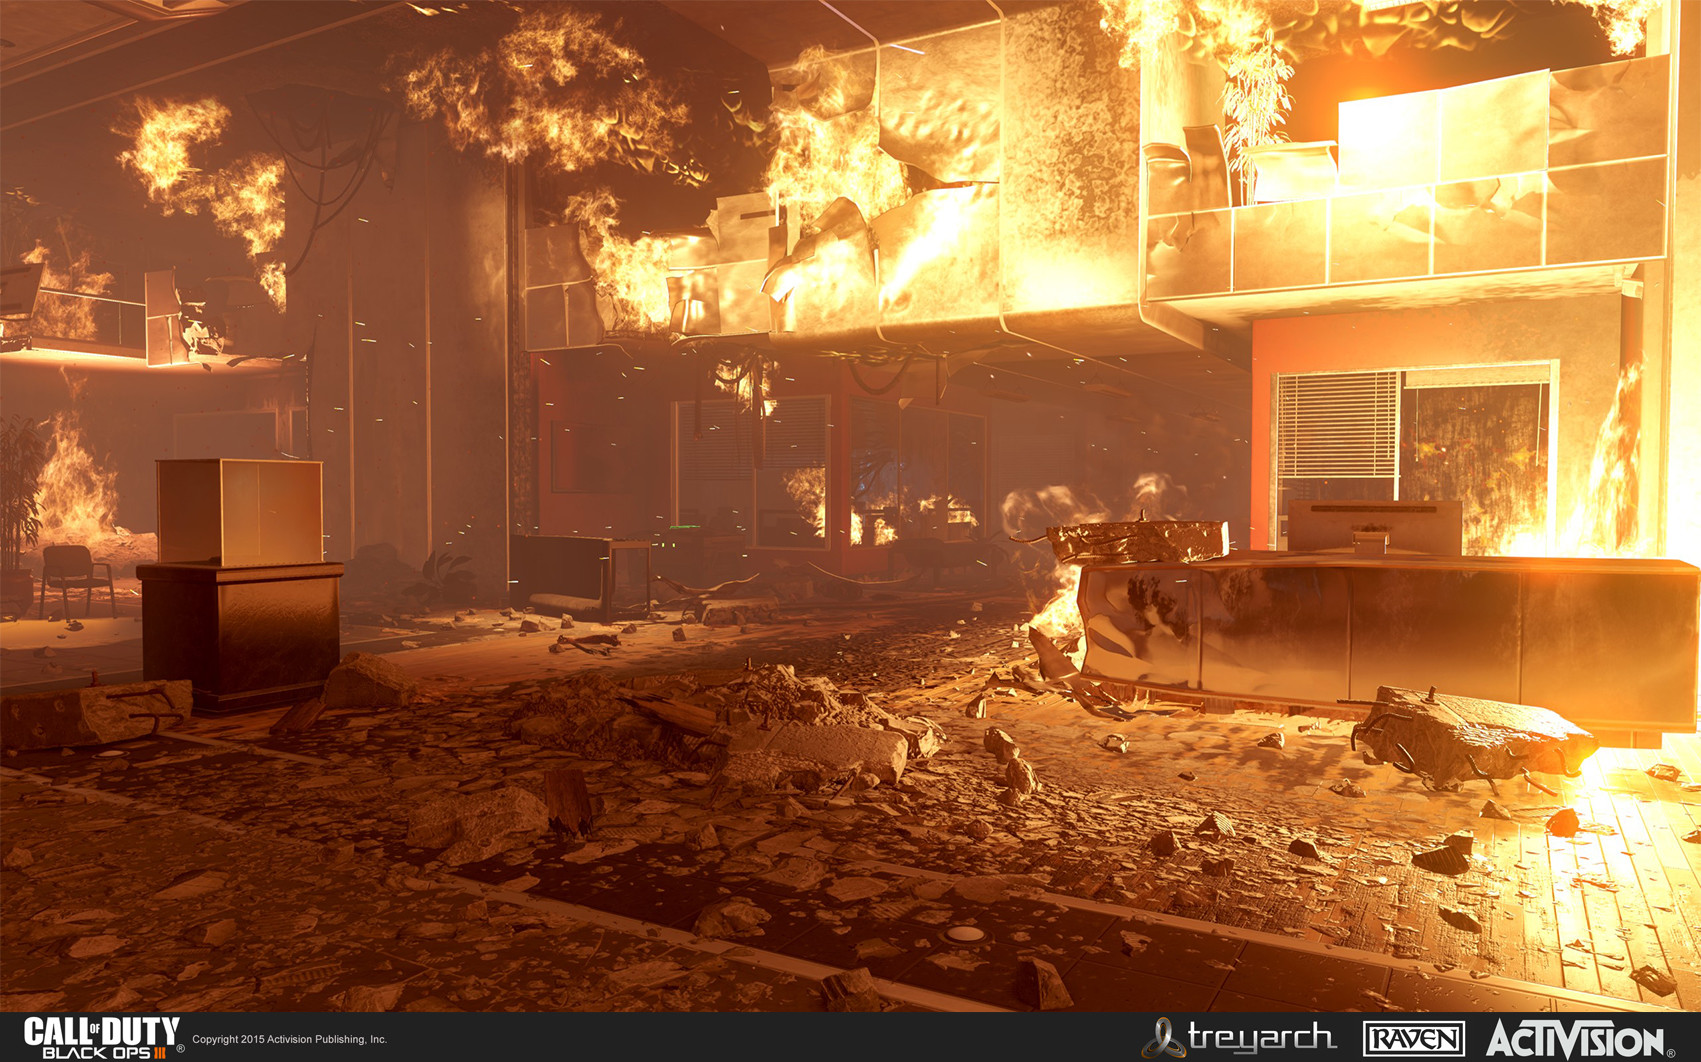 Created the first-floor interior of the destroyed safehouse. This included large destruction models, material treatments, and geo contruction.